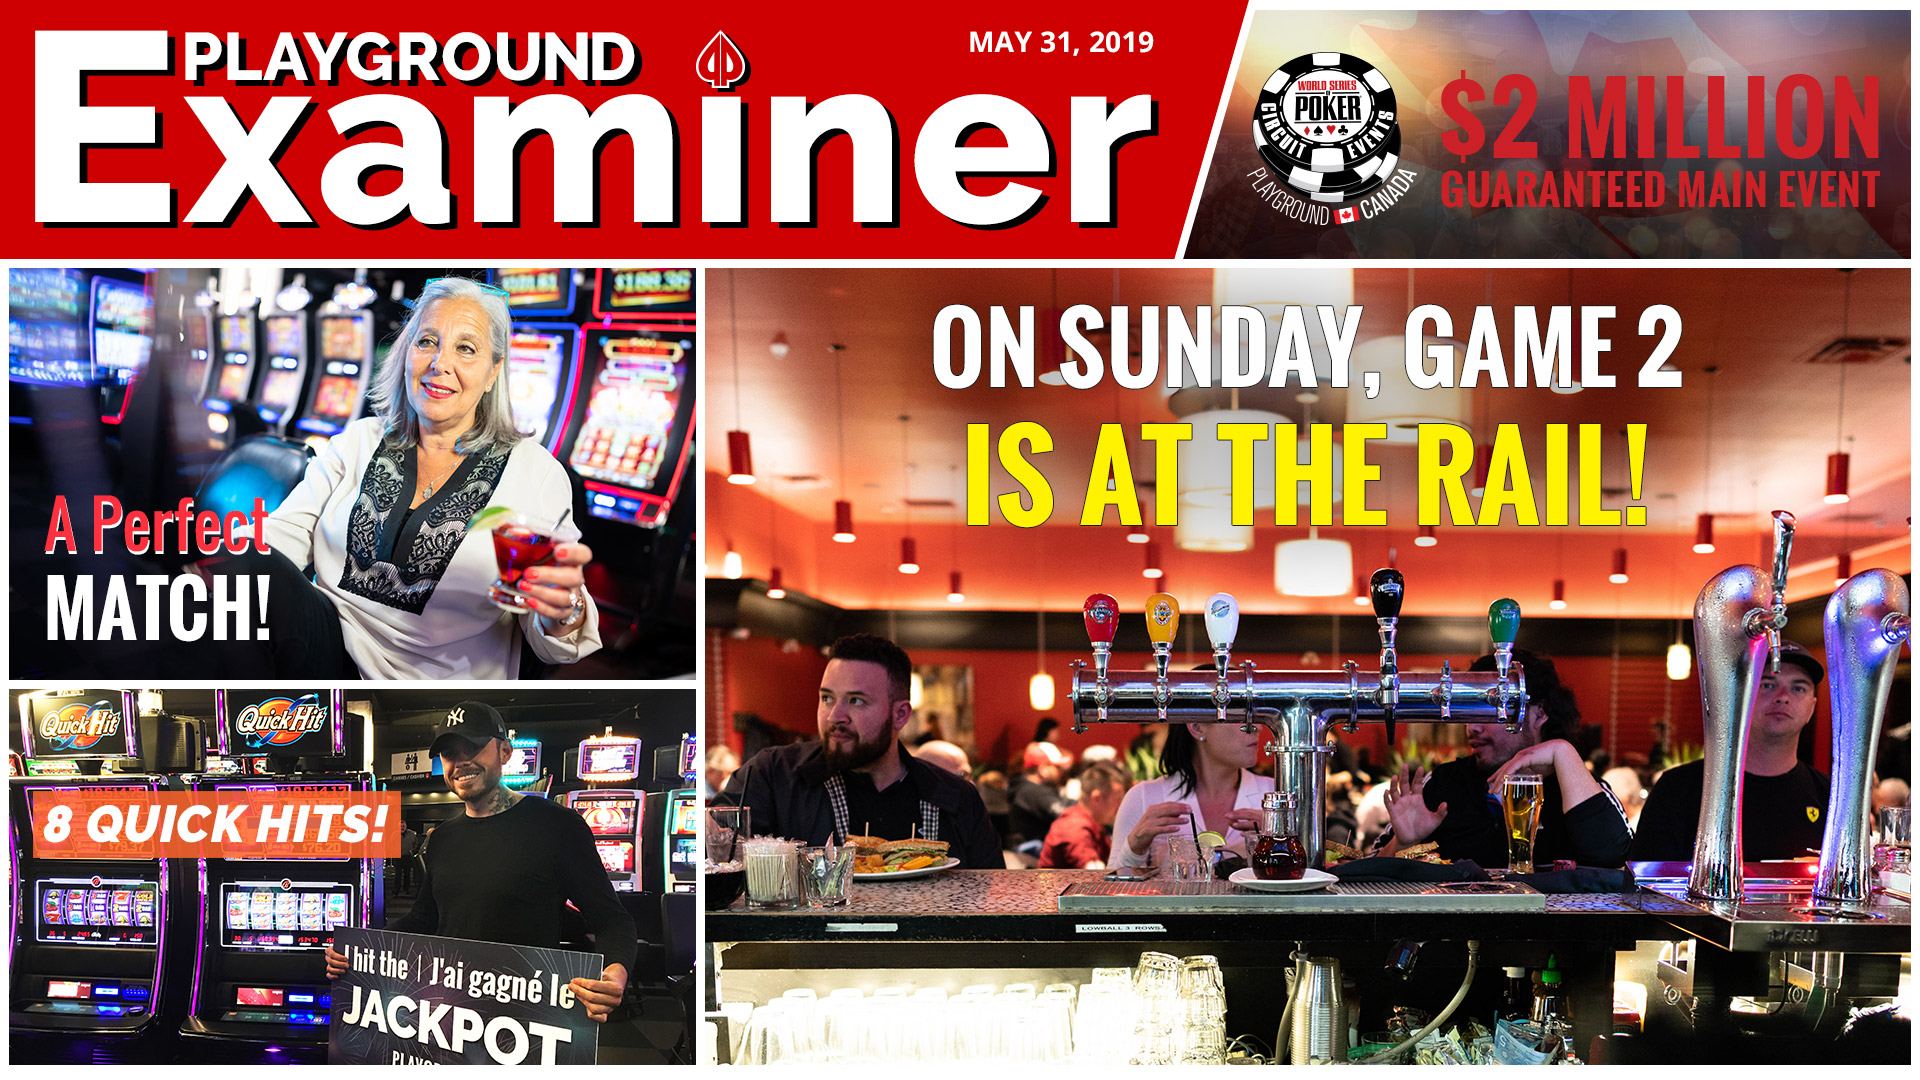 Sunday at The Rail… Go sports!